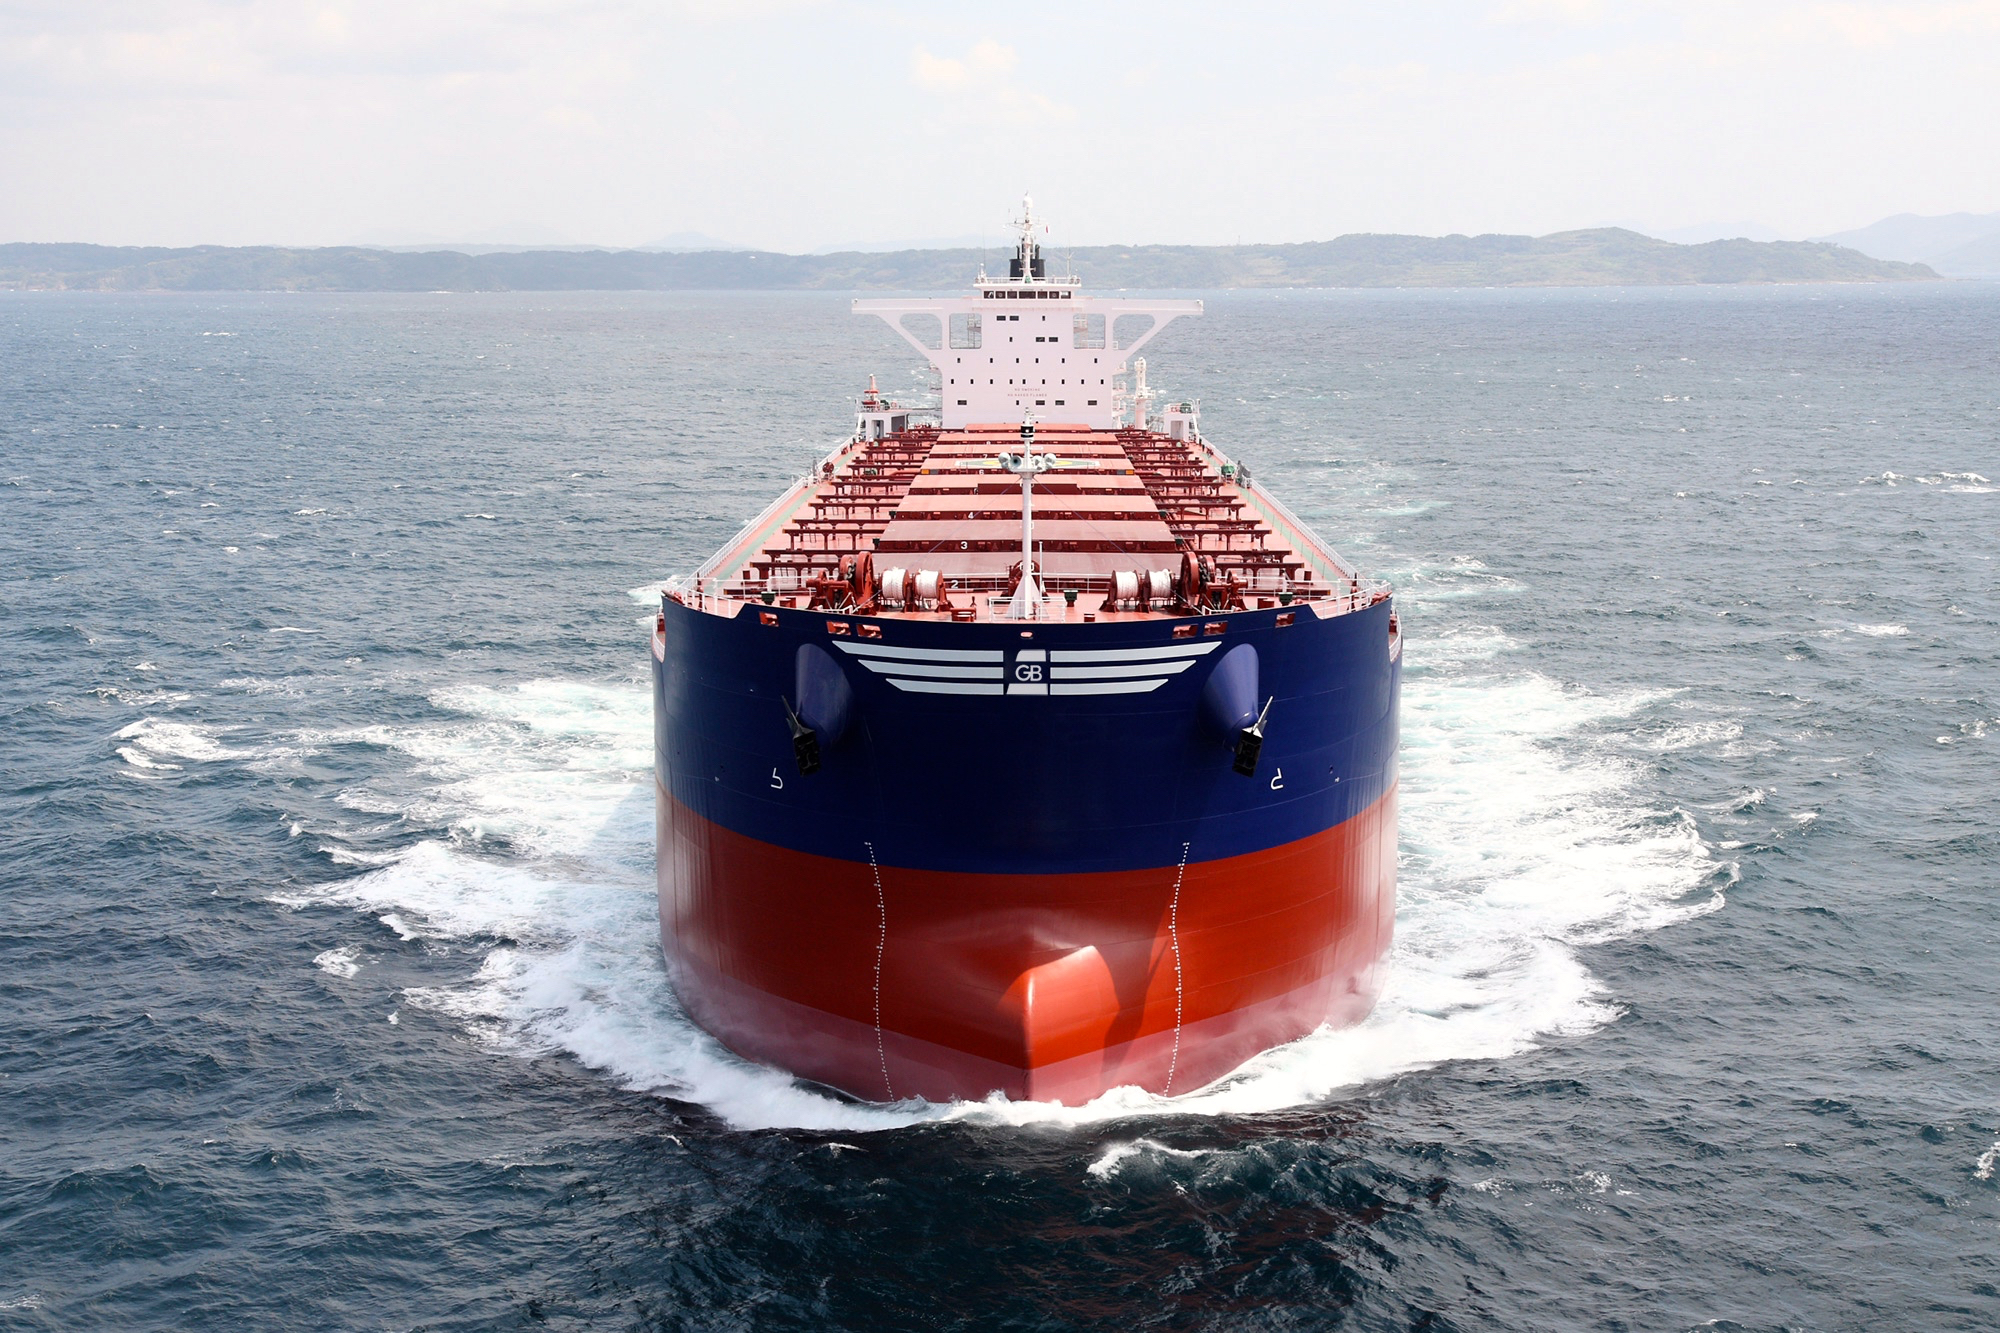 GoodBulk - GoodBulk, LTD. is a dry bulk shipping platform created in partnership with a leading ship owner and operator. It has access to off-market deals and is one of the lower cost operators in the industry.